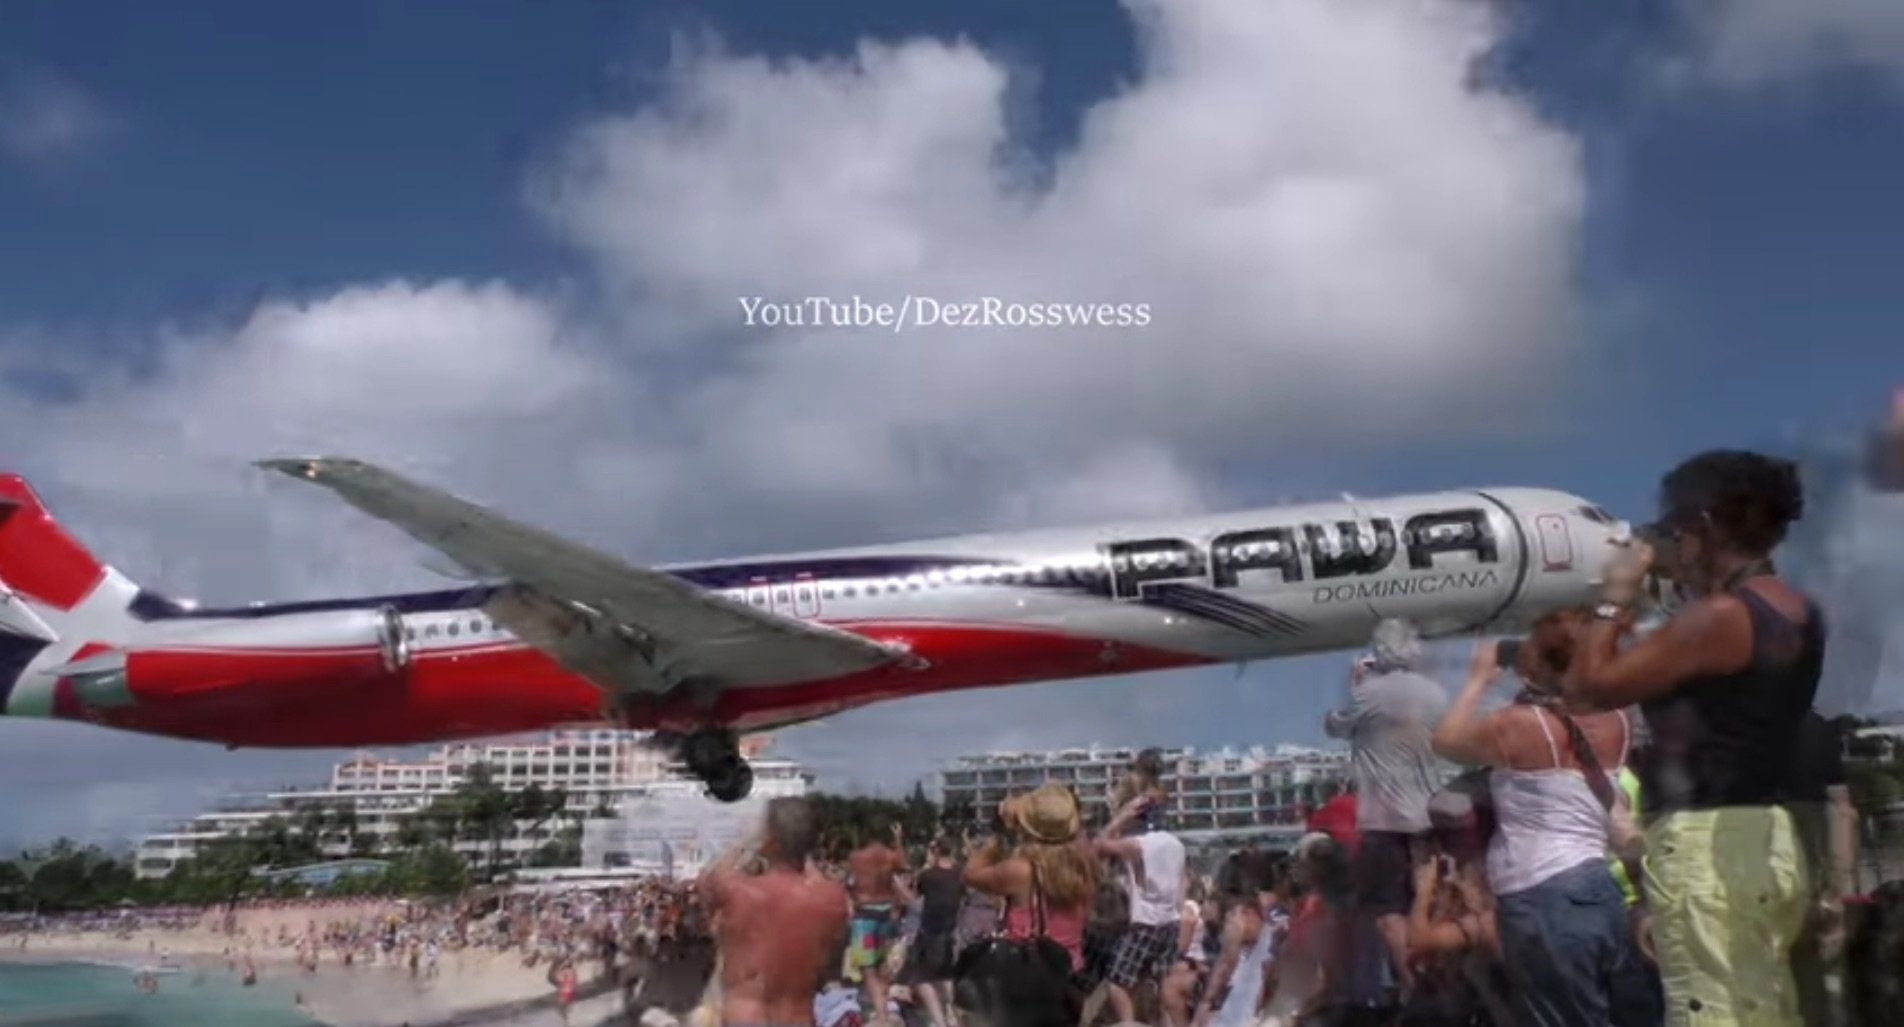 Plane comes in for a landing at Maho Beach.